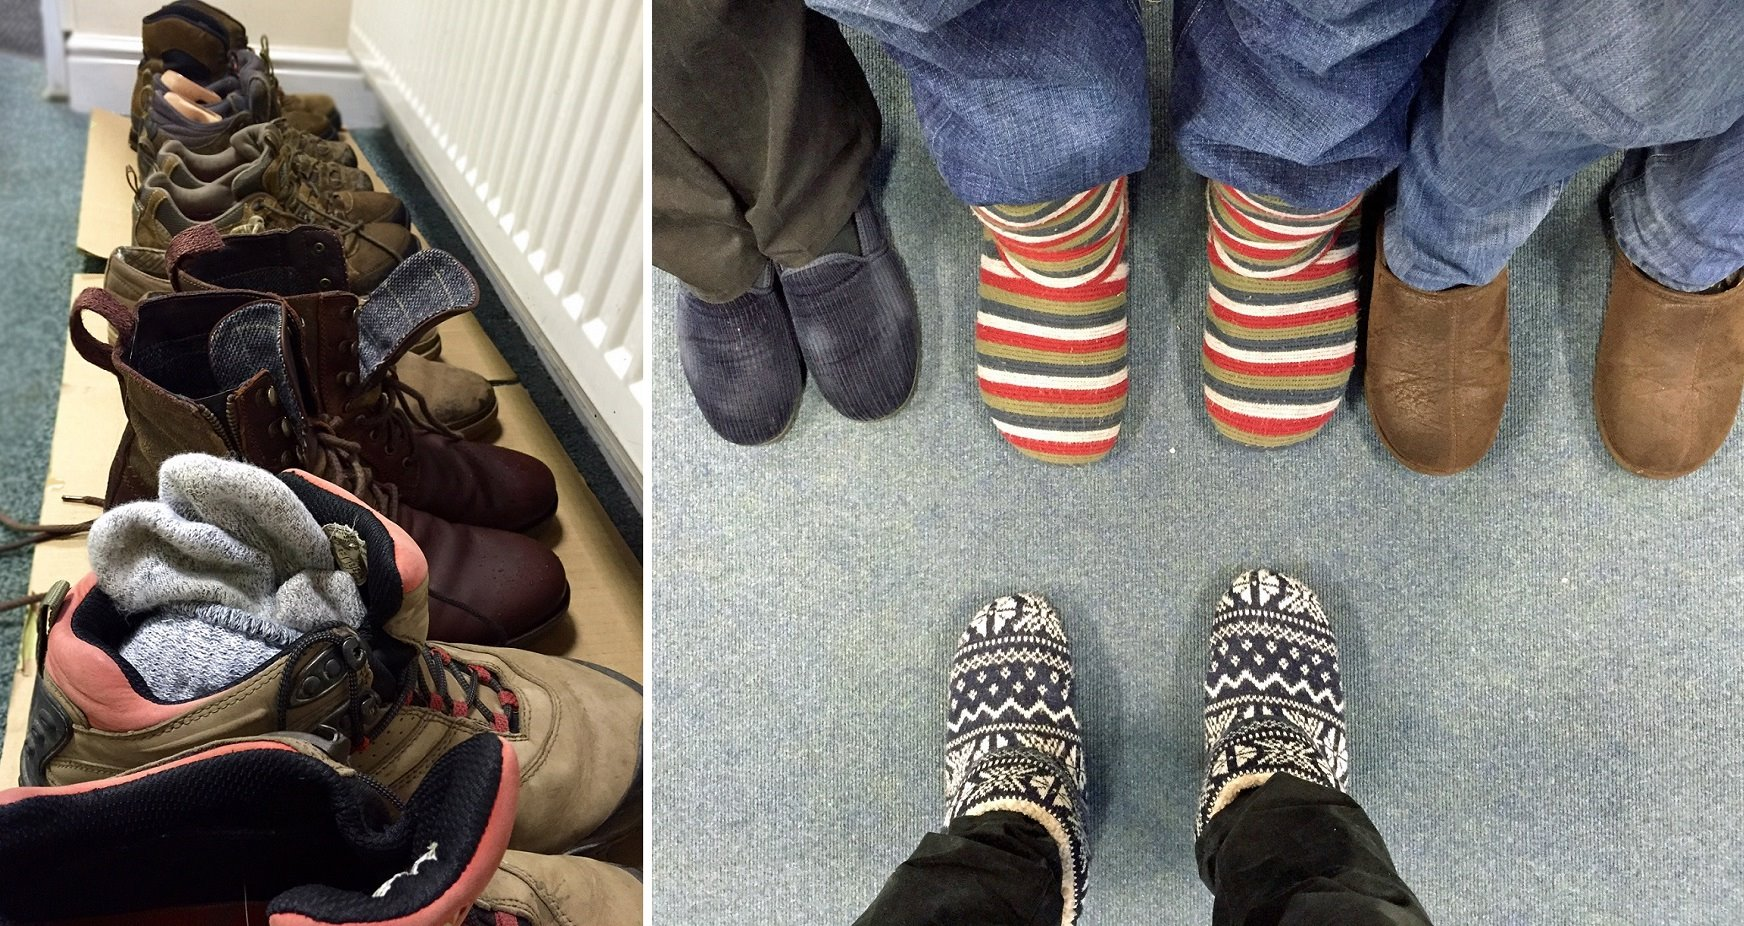 Snow boots were exchanged for slippers once in the shelter of the office.